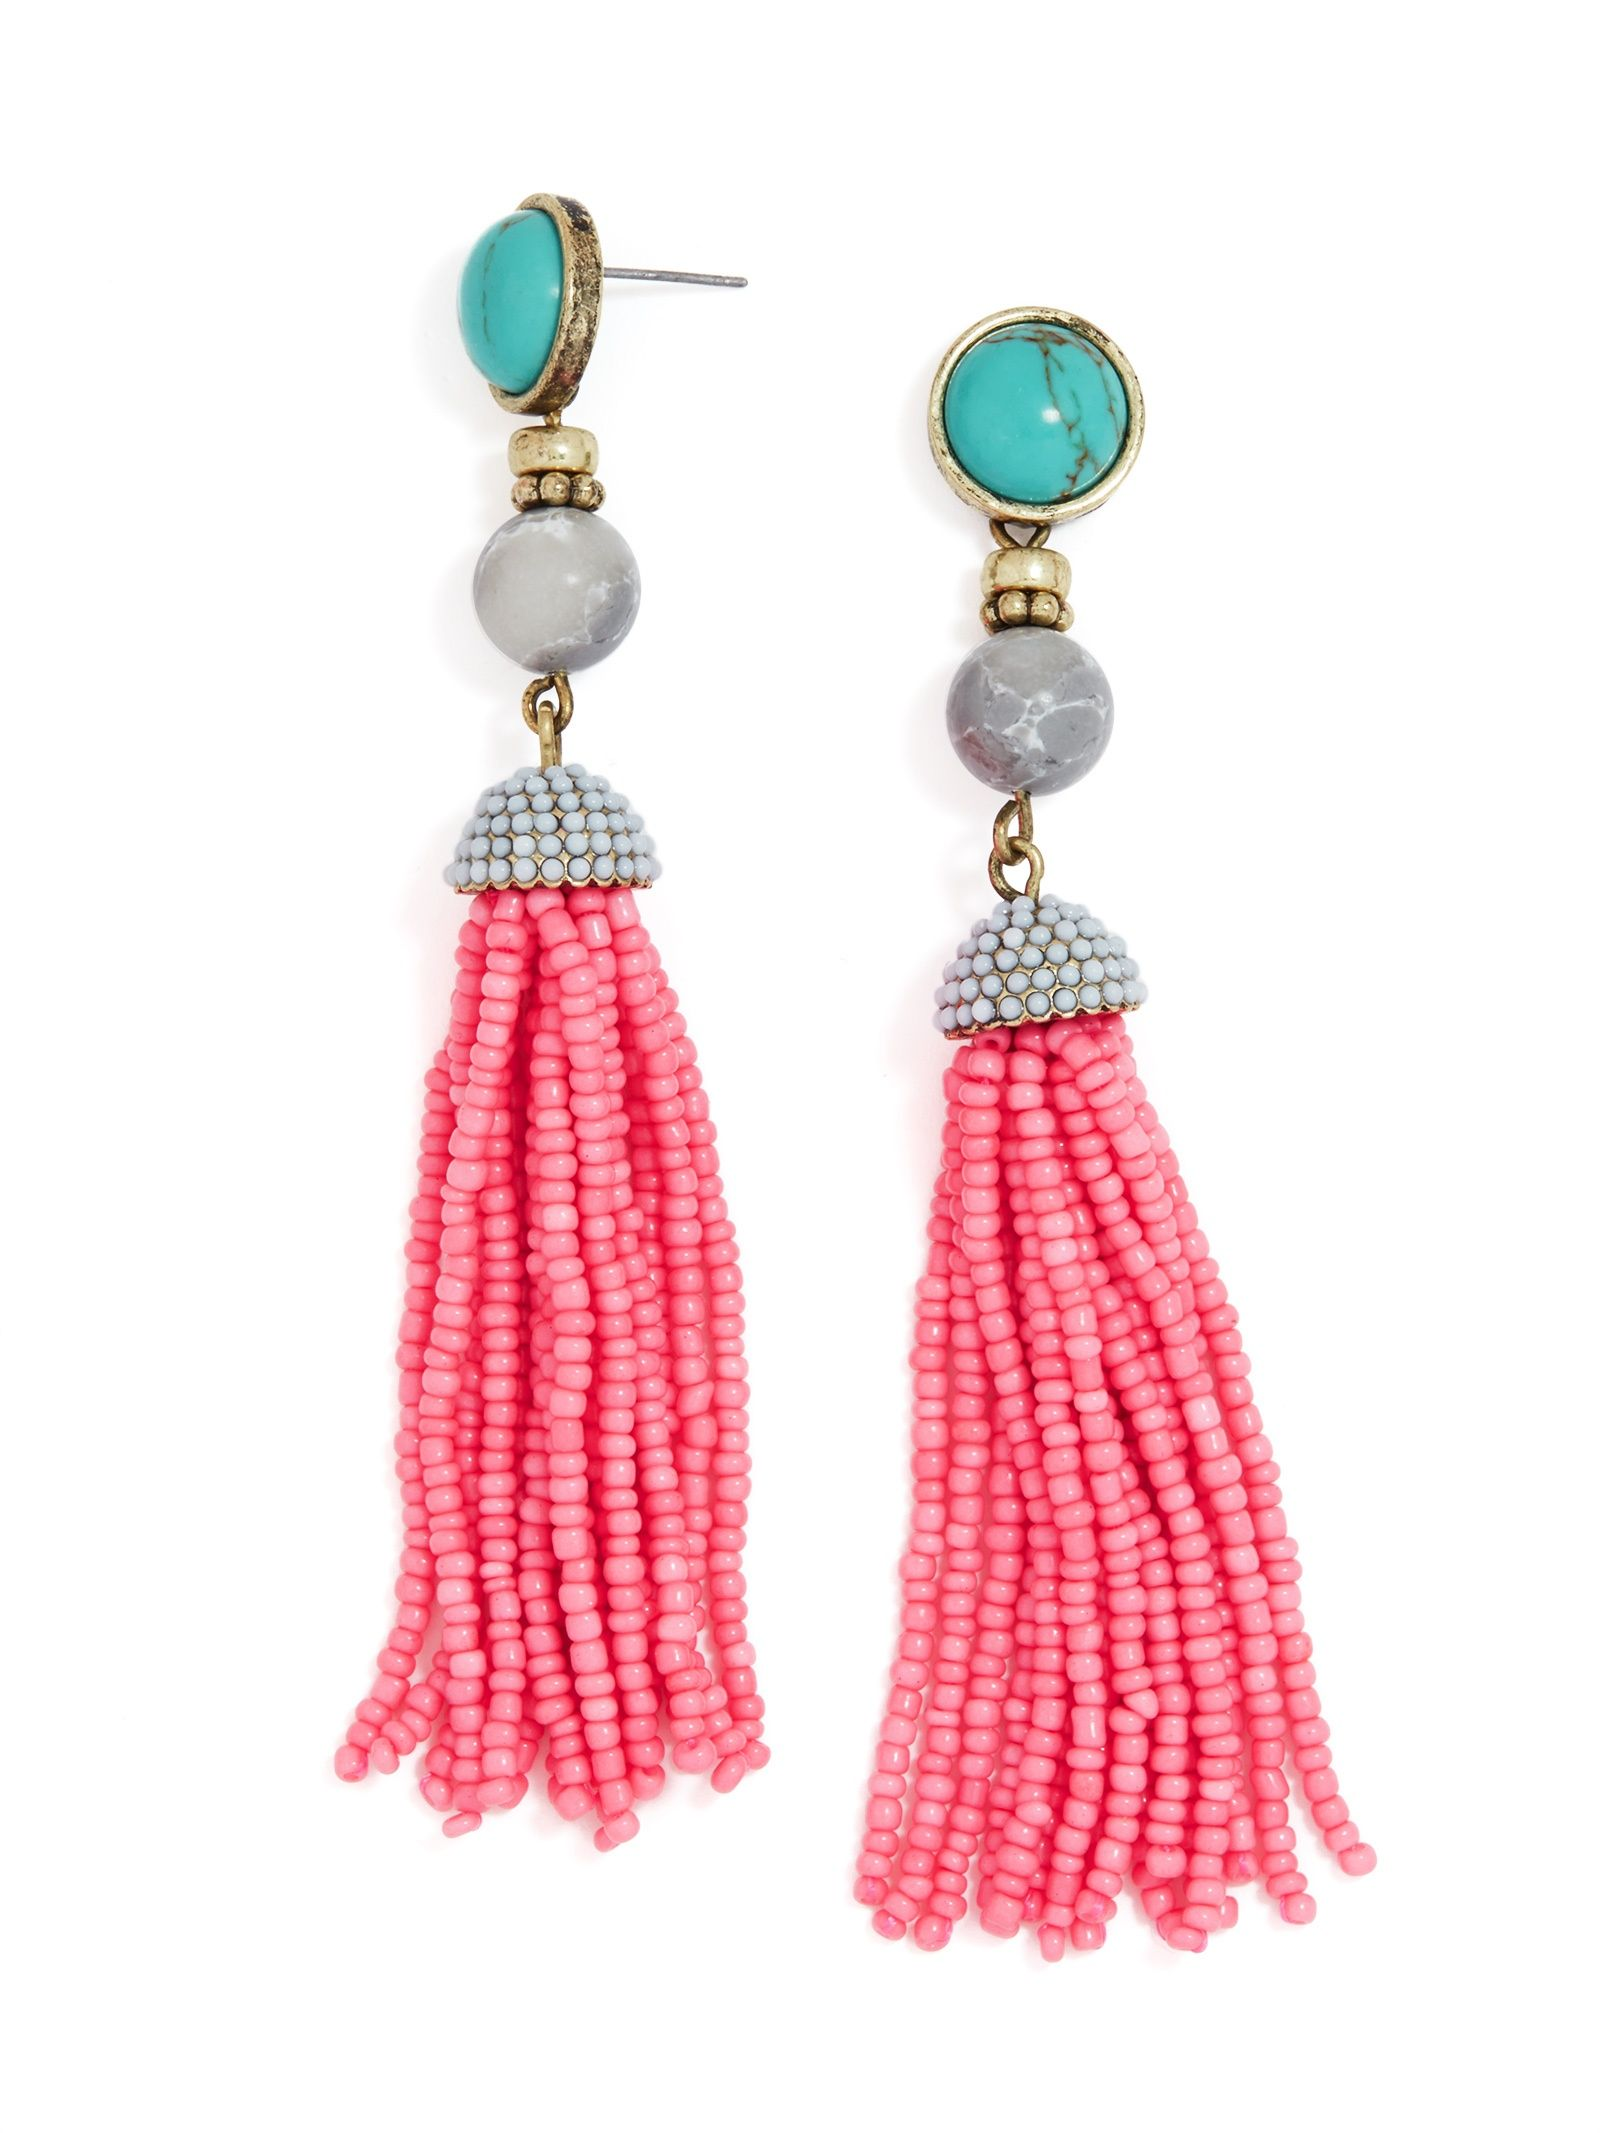 Artemis Tassel Earrings is part of Pink tassel earrings, Baublebar earrings, Pink drop earrings, Tassel drop earrings, Tassel earrings, Beaded tassel earrings - Bold beaded tassel earrings get dressed up with cabochonembellished posts  These look especially ontrend when styled with soft hues and softer fabrics  Copyright © 2016 BaubleBar, Inc